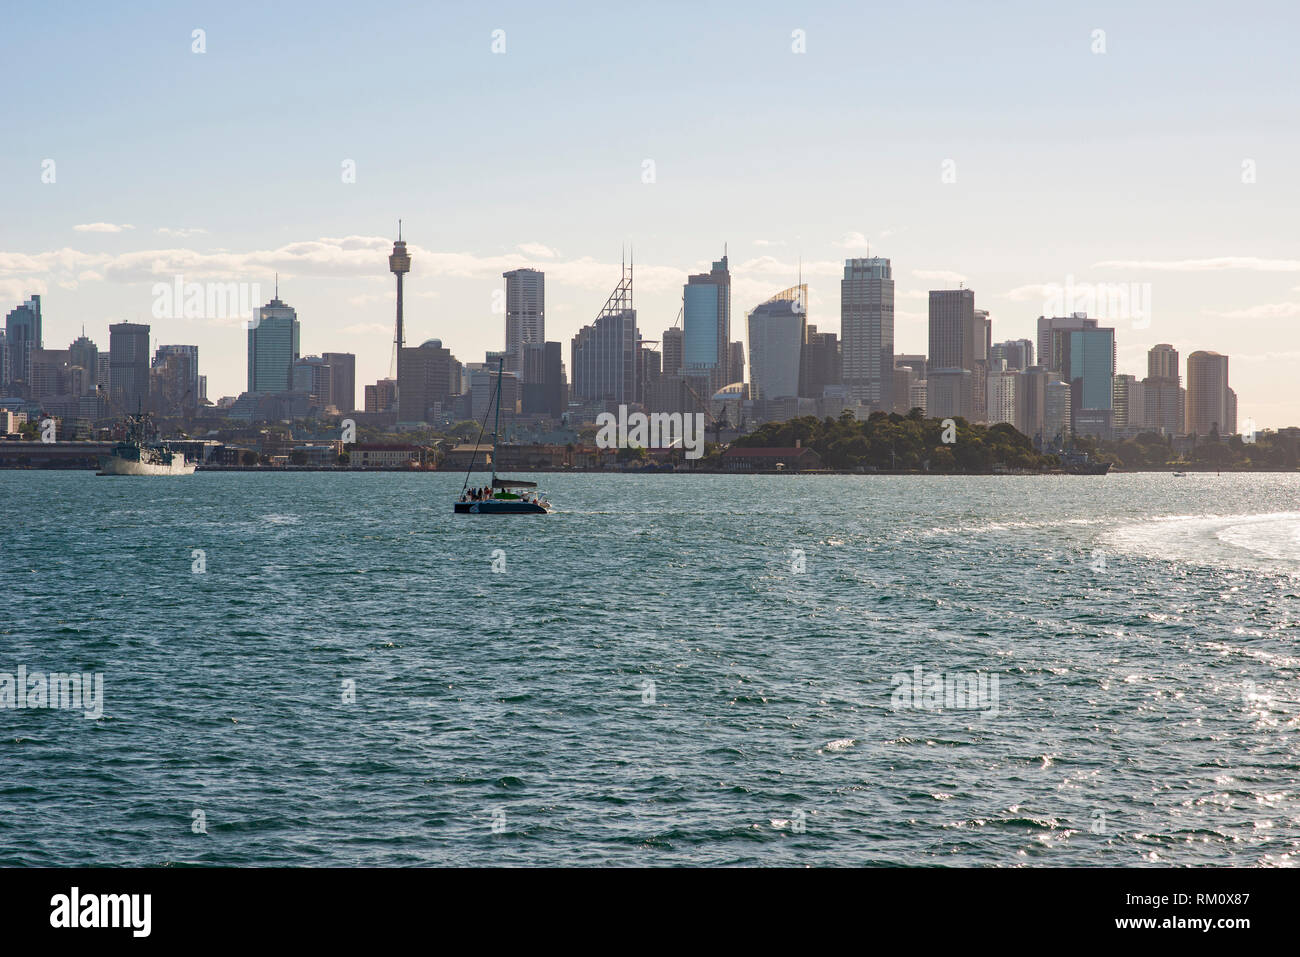 A view toward the Sydney skyline. Stock Photo